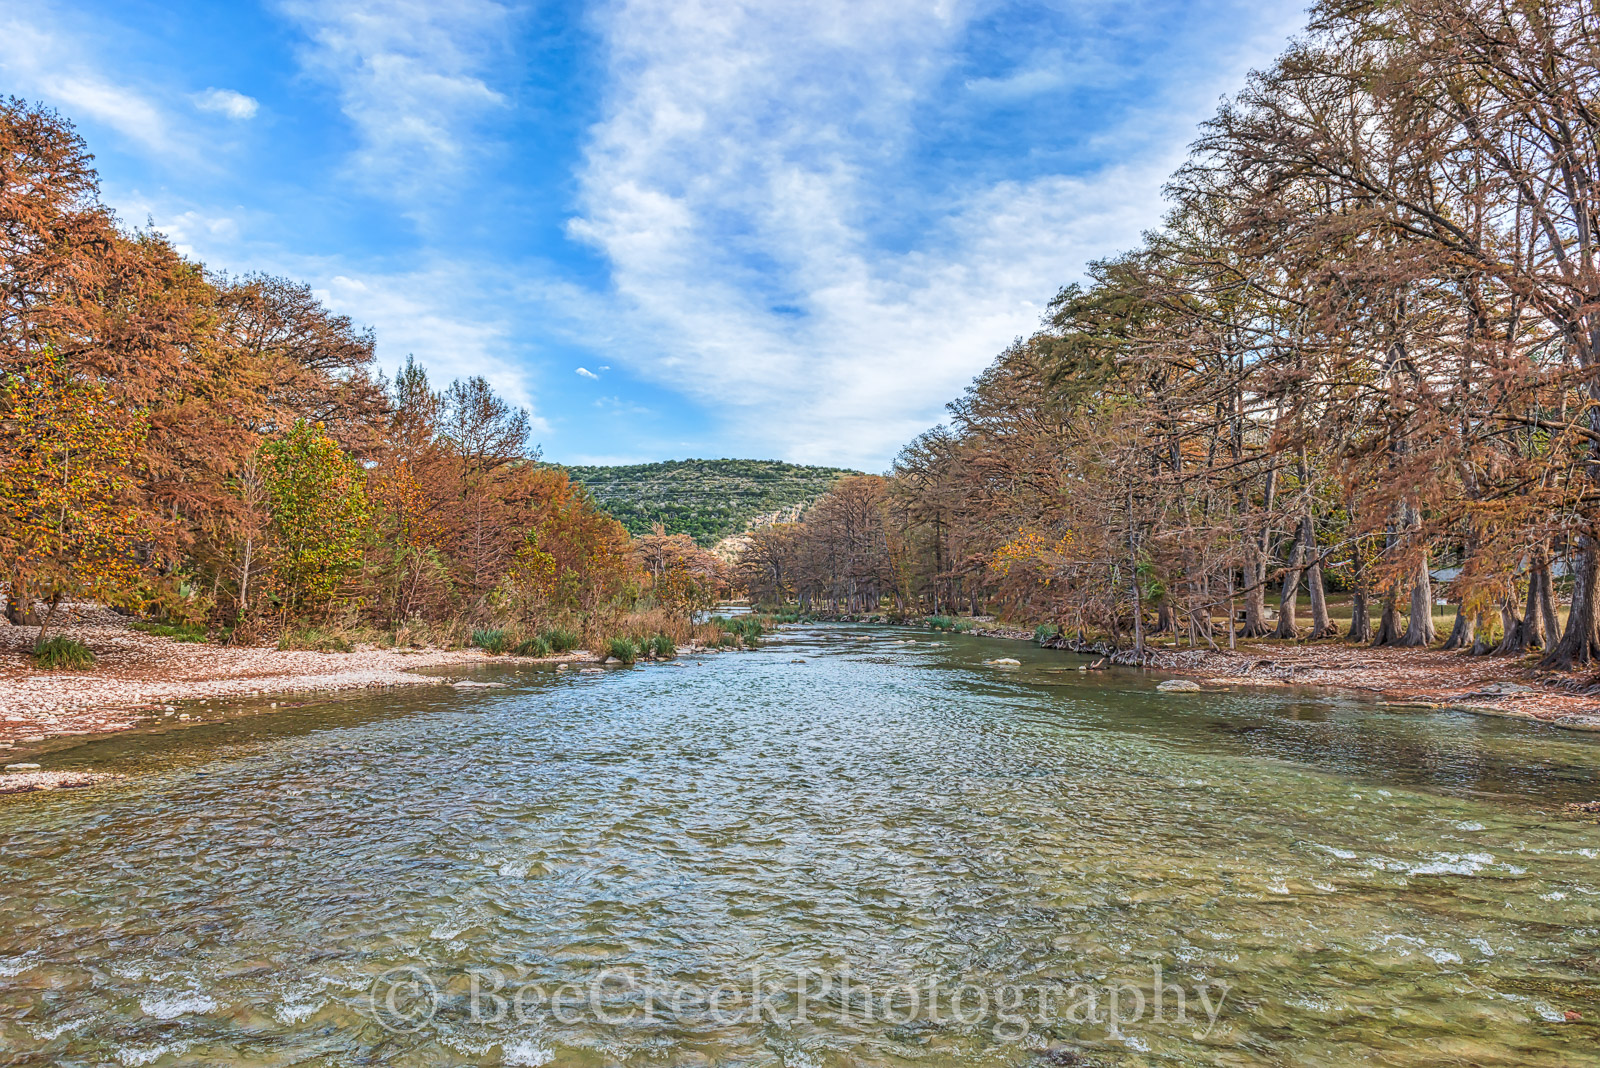 Con Can, Frio River, River, fall, fall landscape, fall landscapes, scenic, scenic Tx images, scenic texas images, texas, water, photo